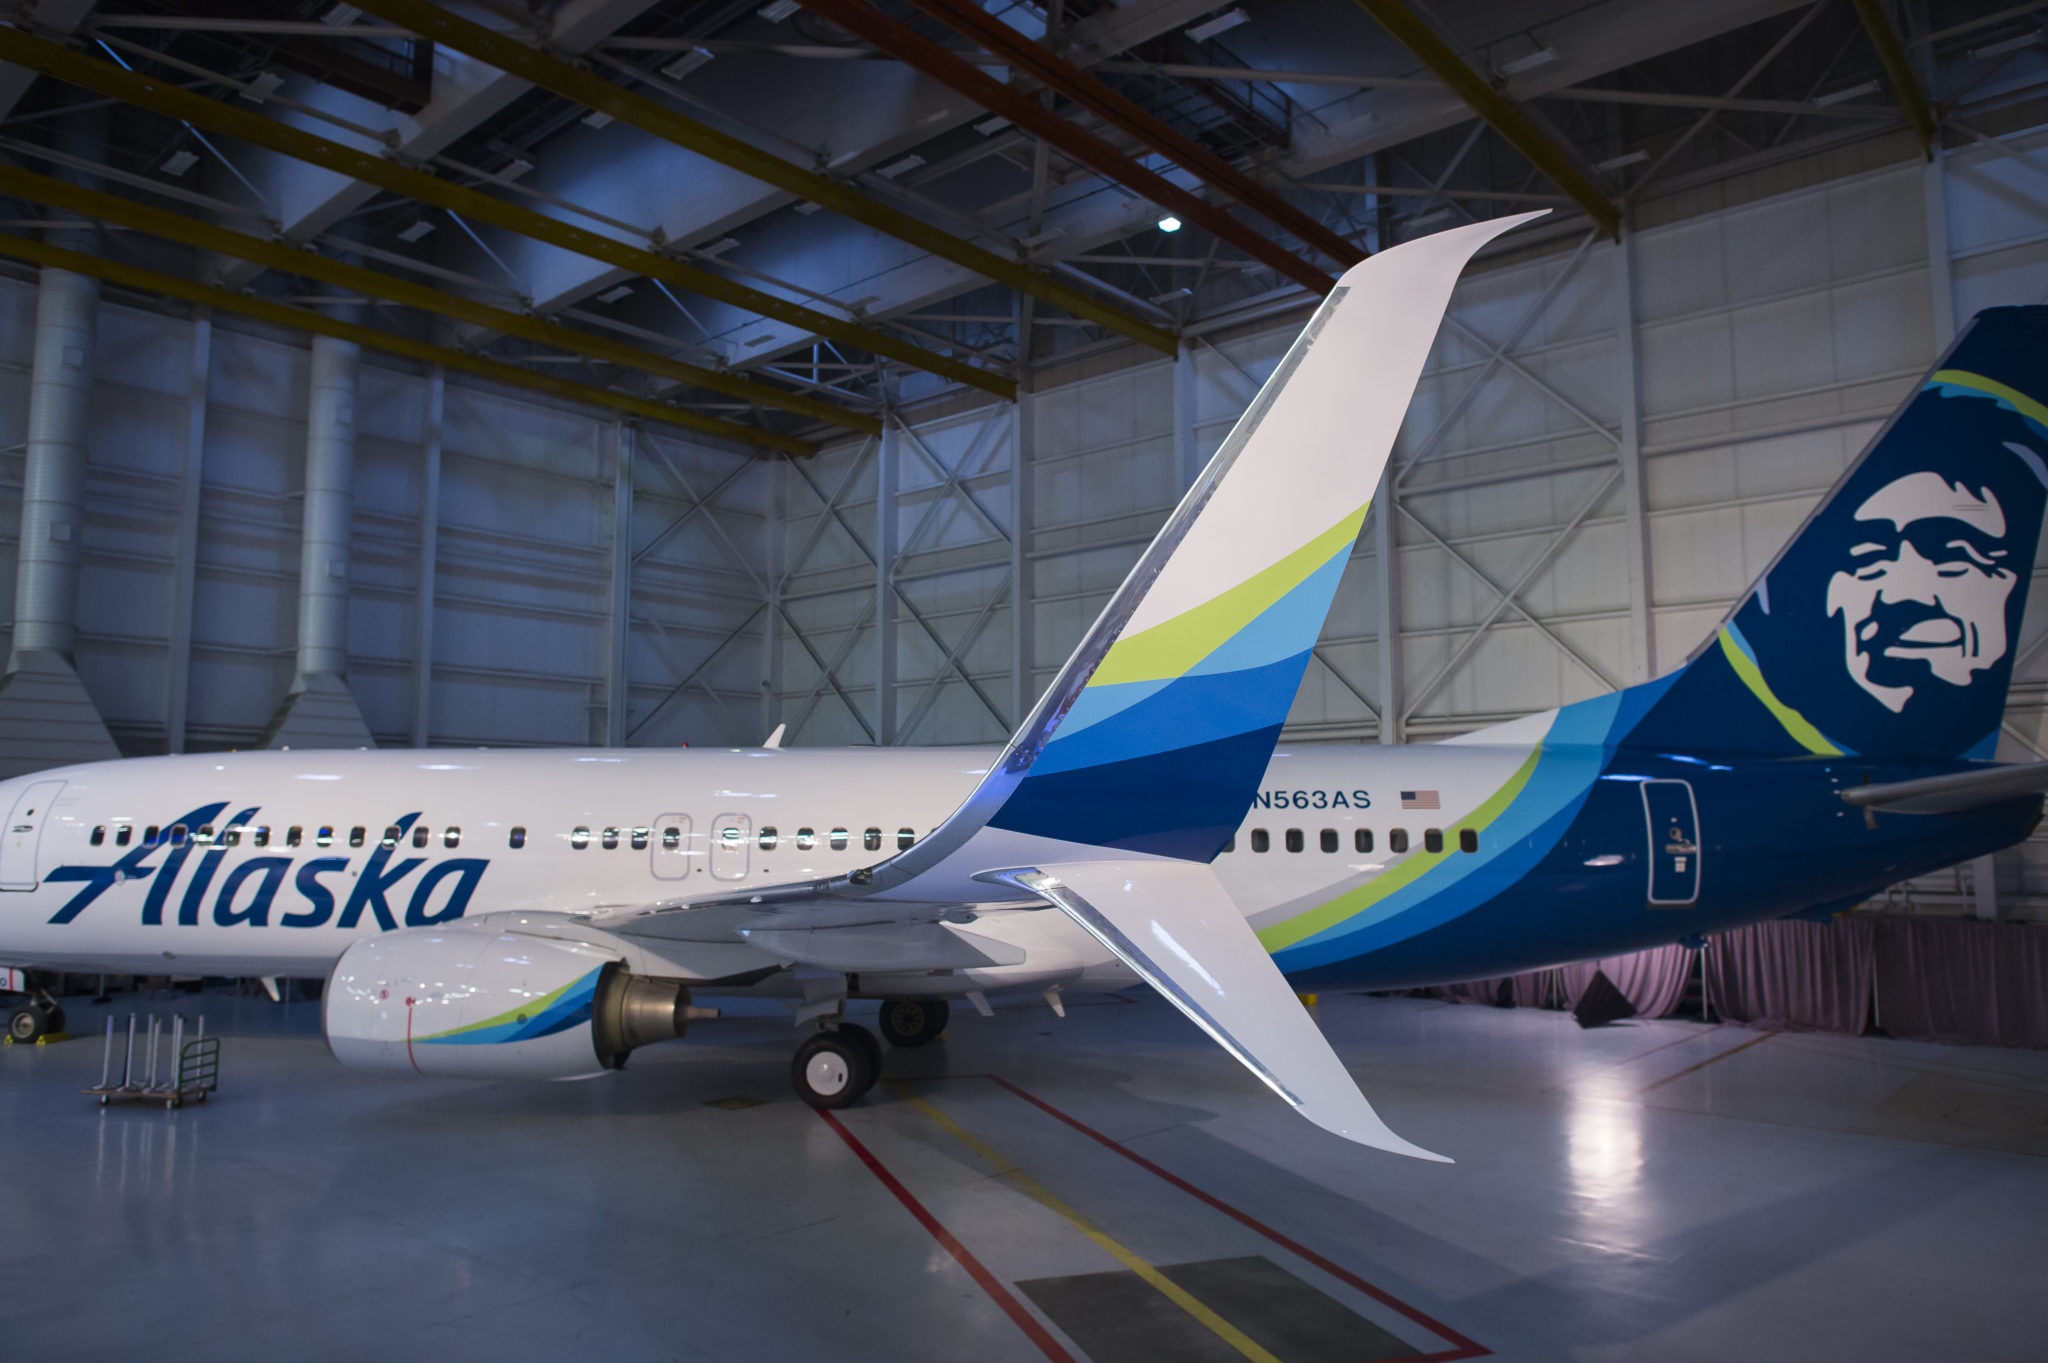 With a new rebrand just getting started does Alaska really want to combine VX into it's ethos? Image: Alaska Airlines